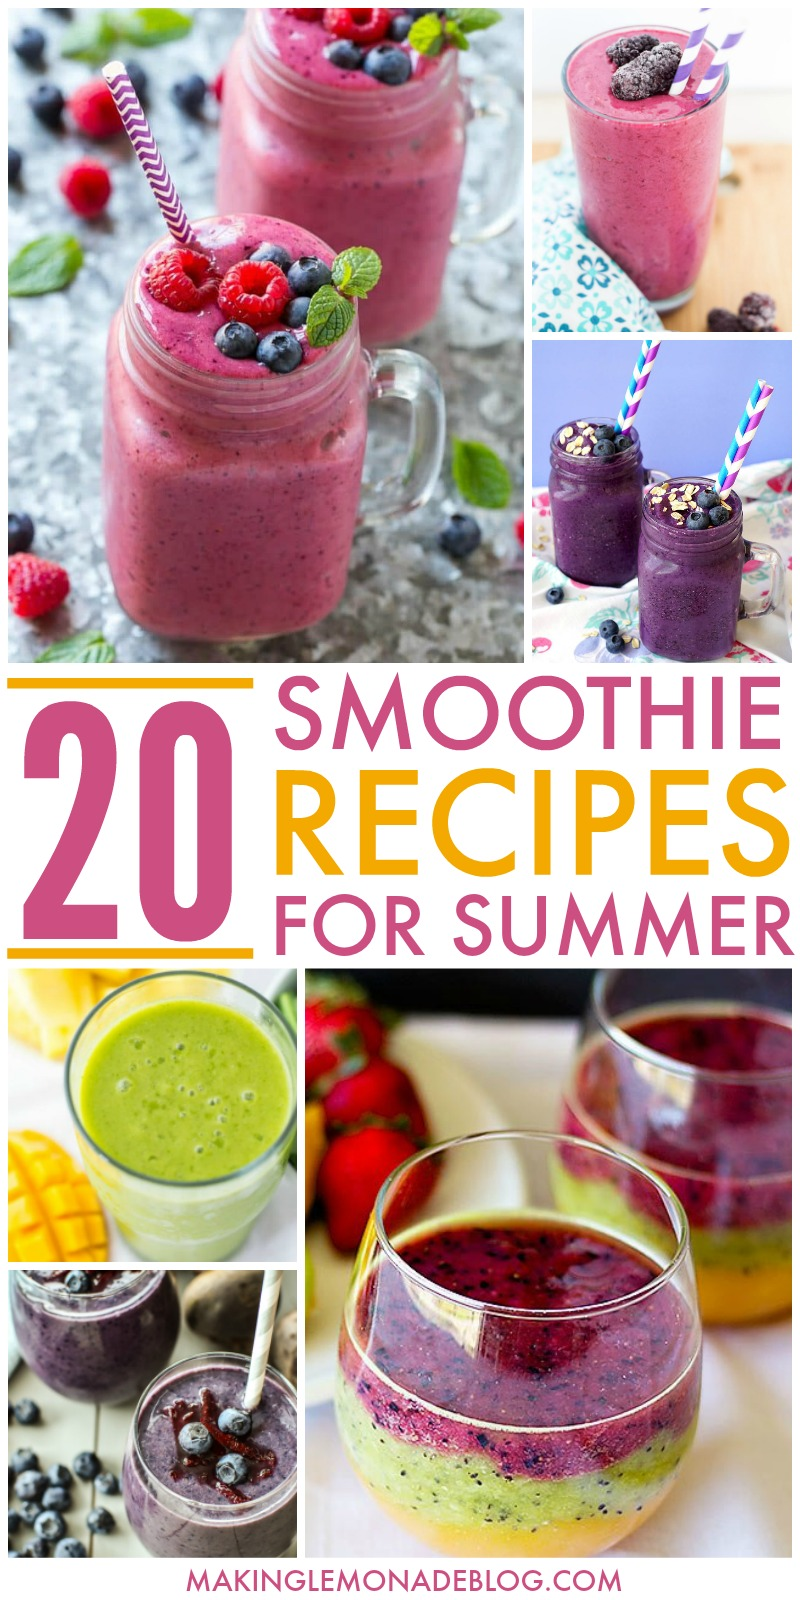 Best Smoothie Recipes for Summer